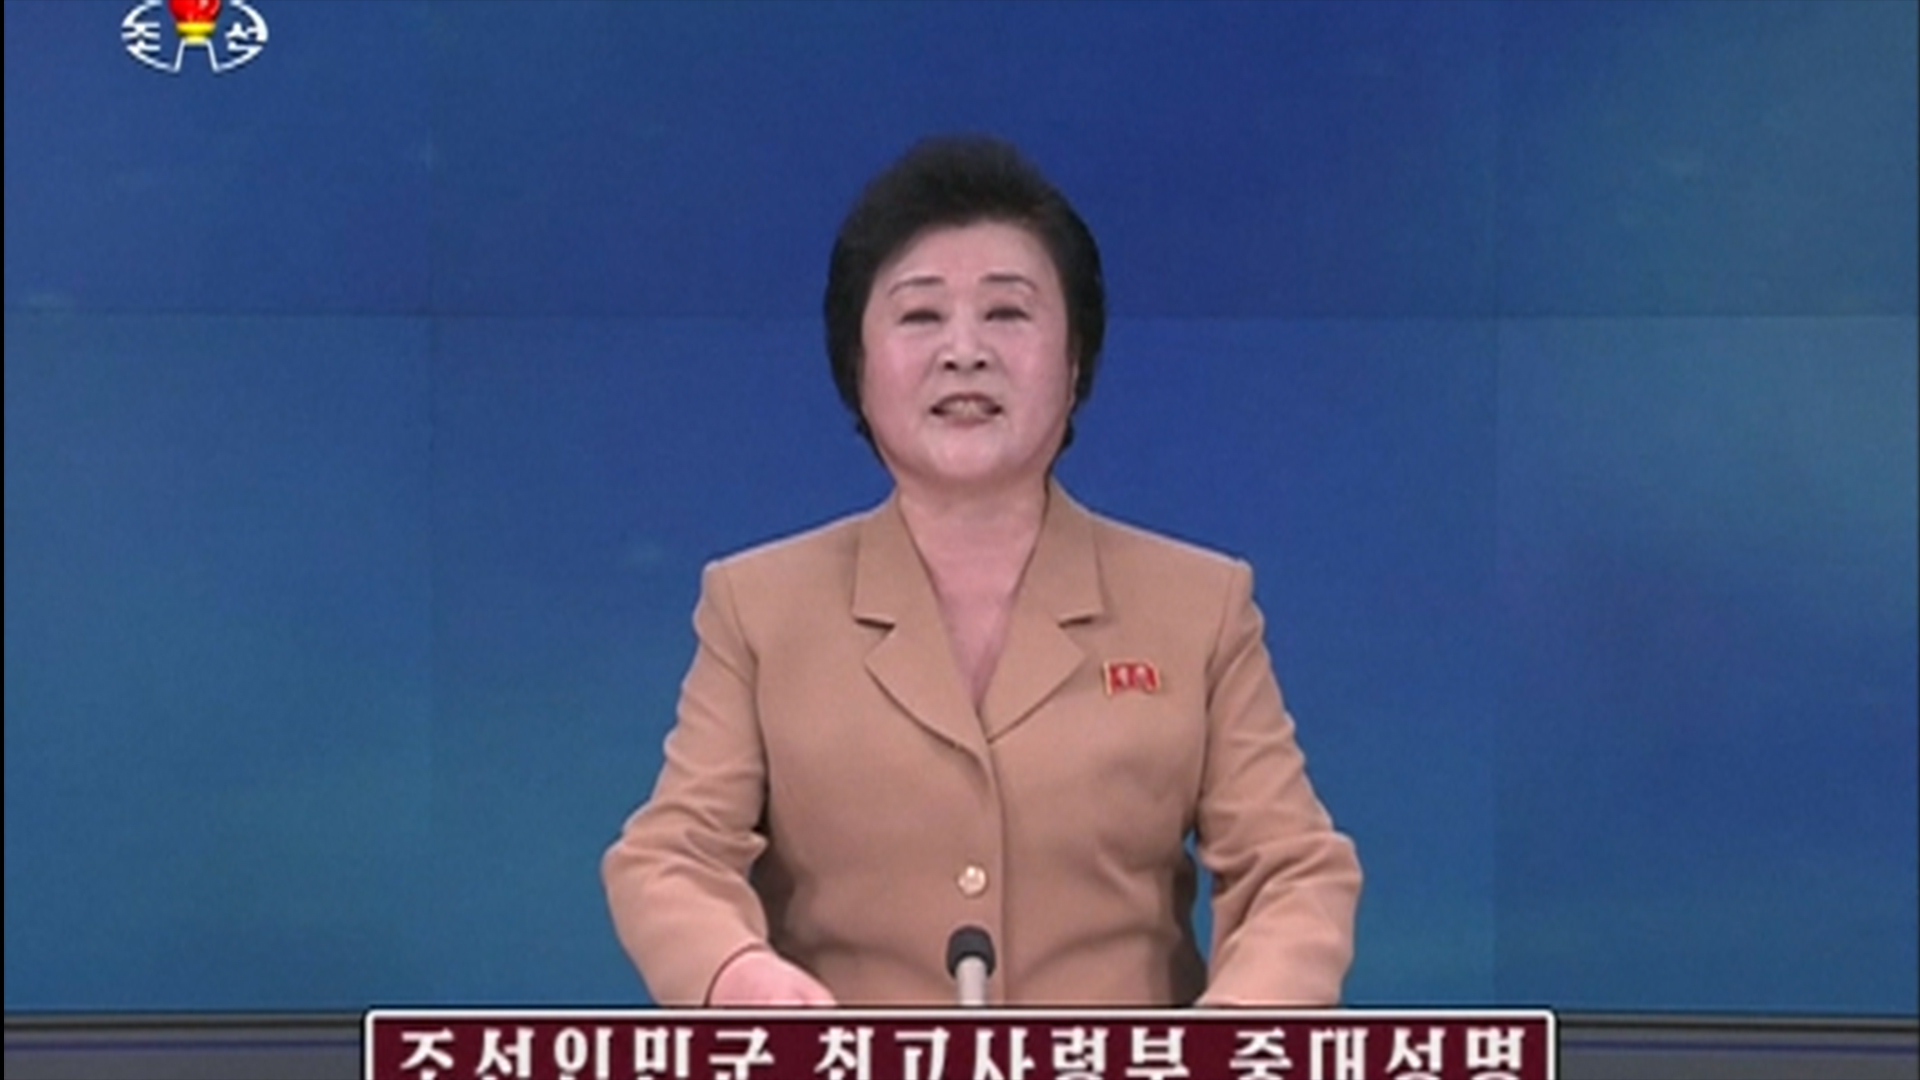 North Korea Threatens U.S. with Military Action